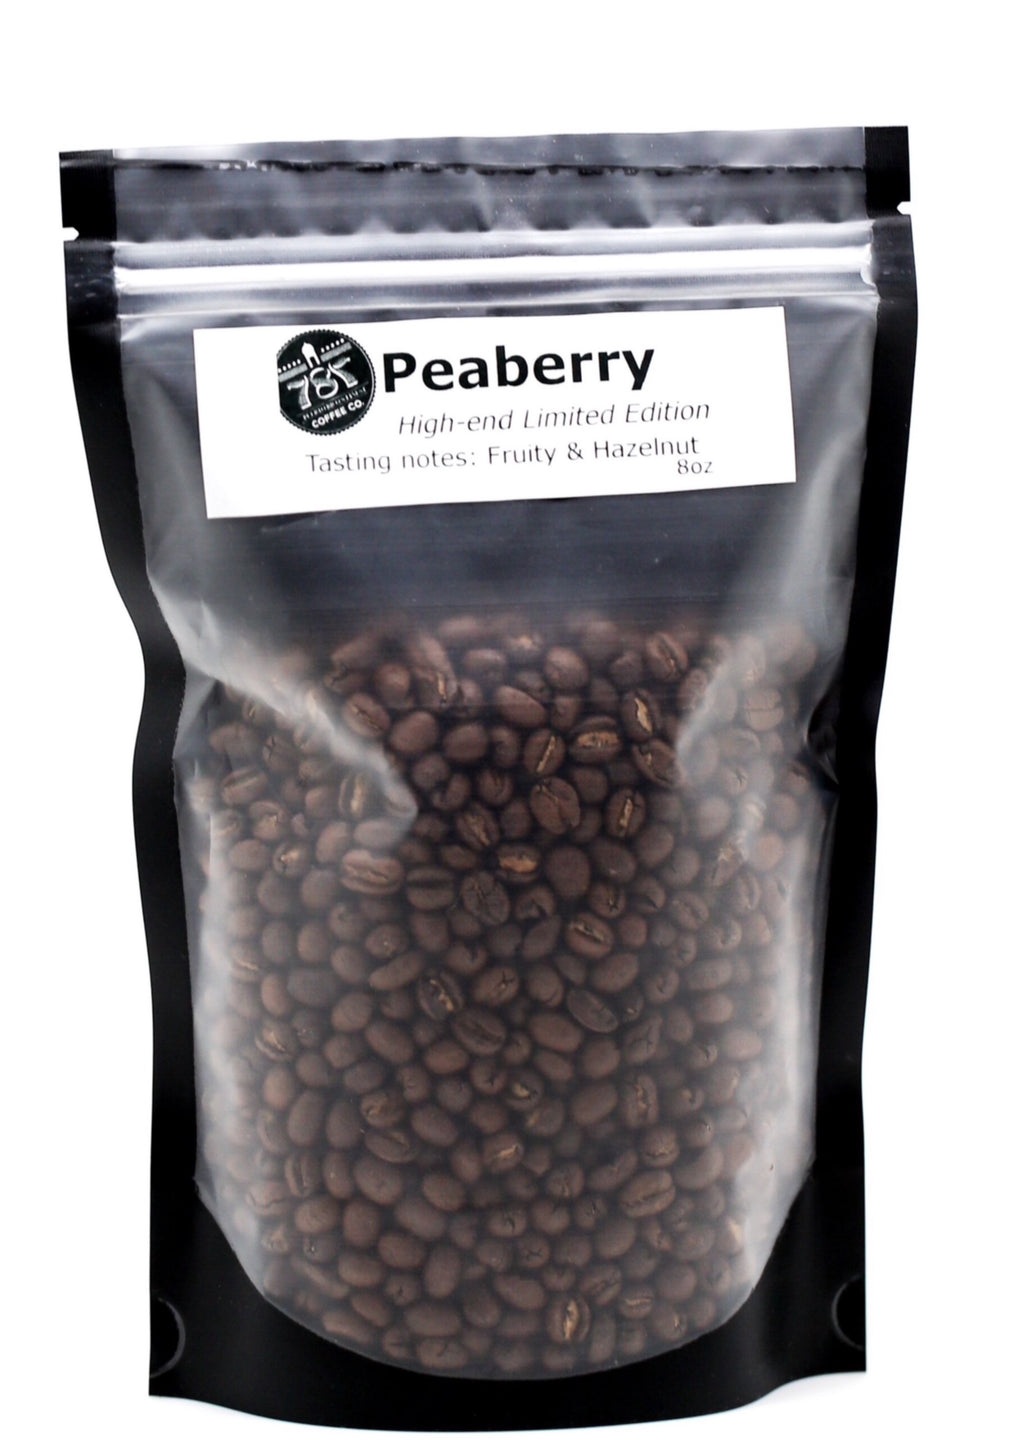 Peaberry coffee beans cafe caracolillo grown processed and roasted in our coffee farm in puerto rico . fresh coffee, strong coffee, fruity and hazelnut notes.  787 coffee has the freshest coffee